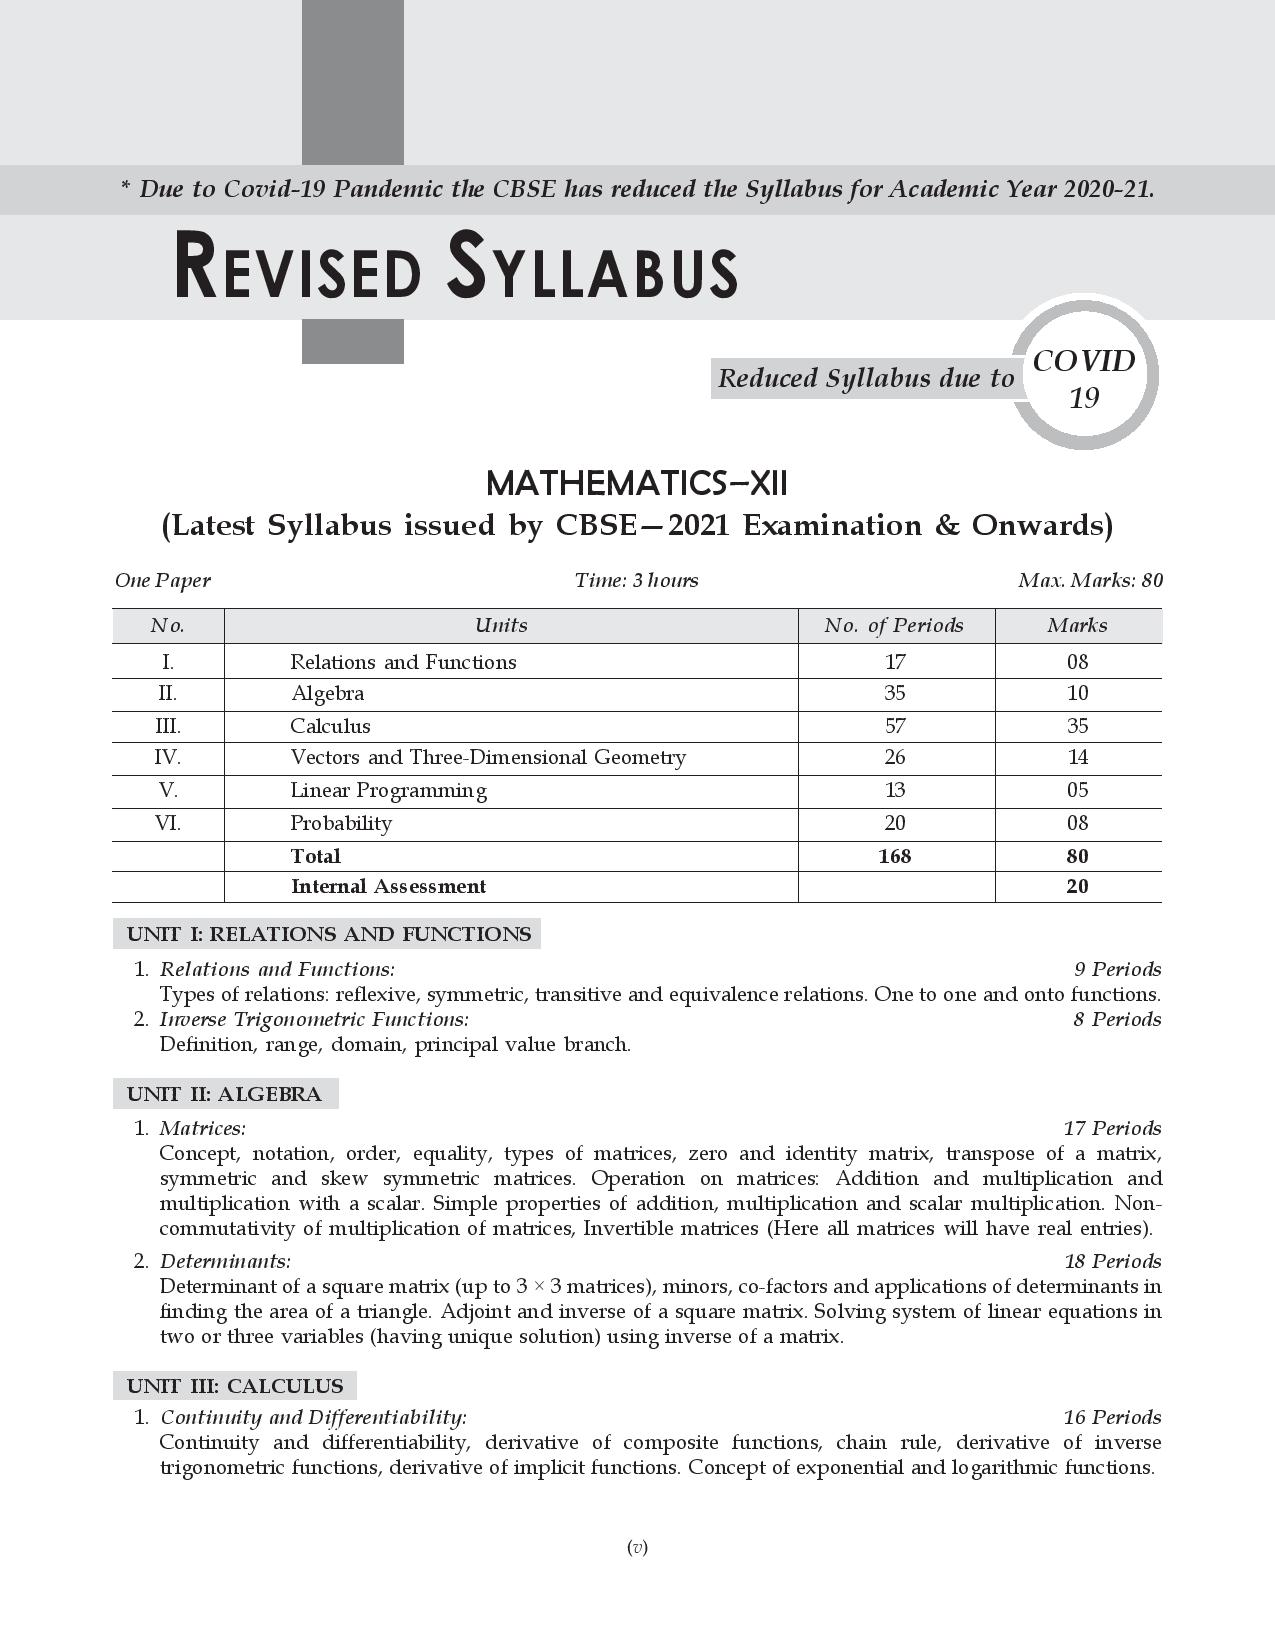 Shivdas CBSE Chapterwise and Markswise Board Exam Question Bank with Latest MCQ's for Class 12 Mathematics (2021 Reduced Edition)